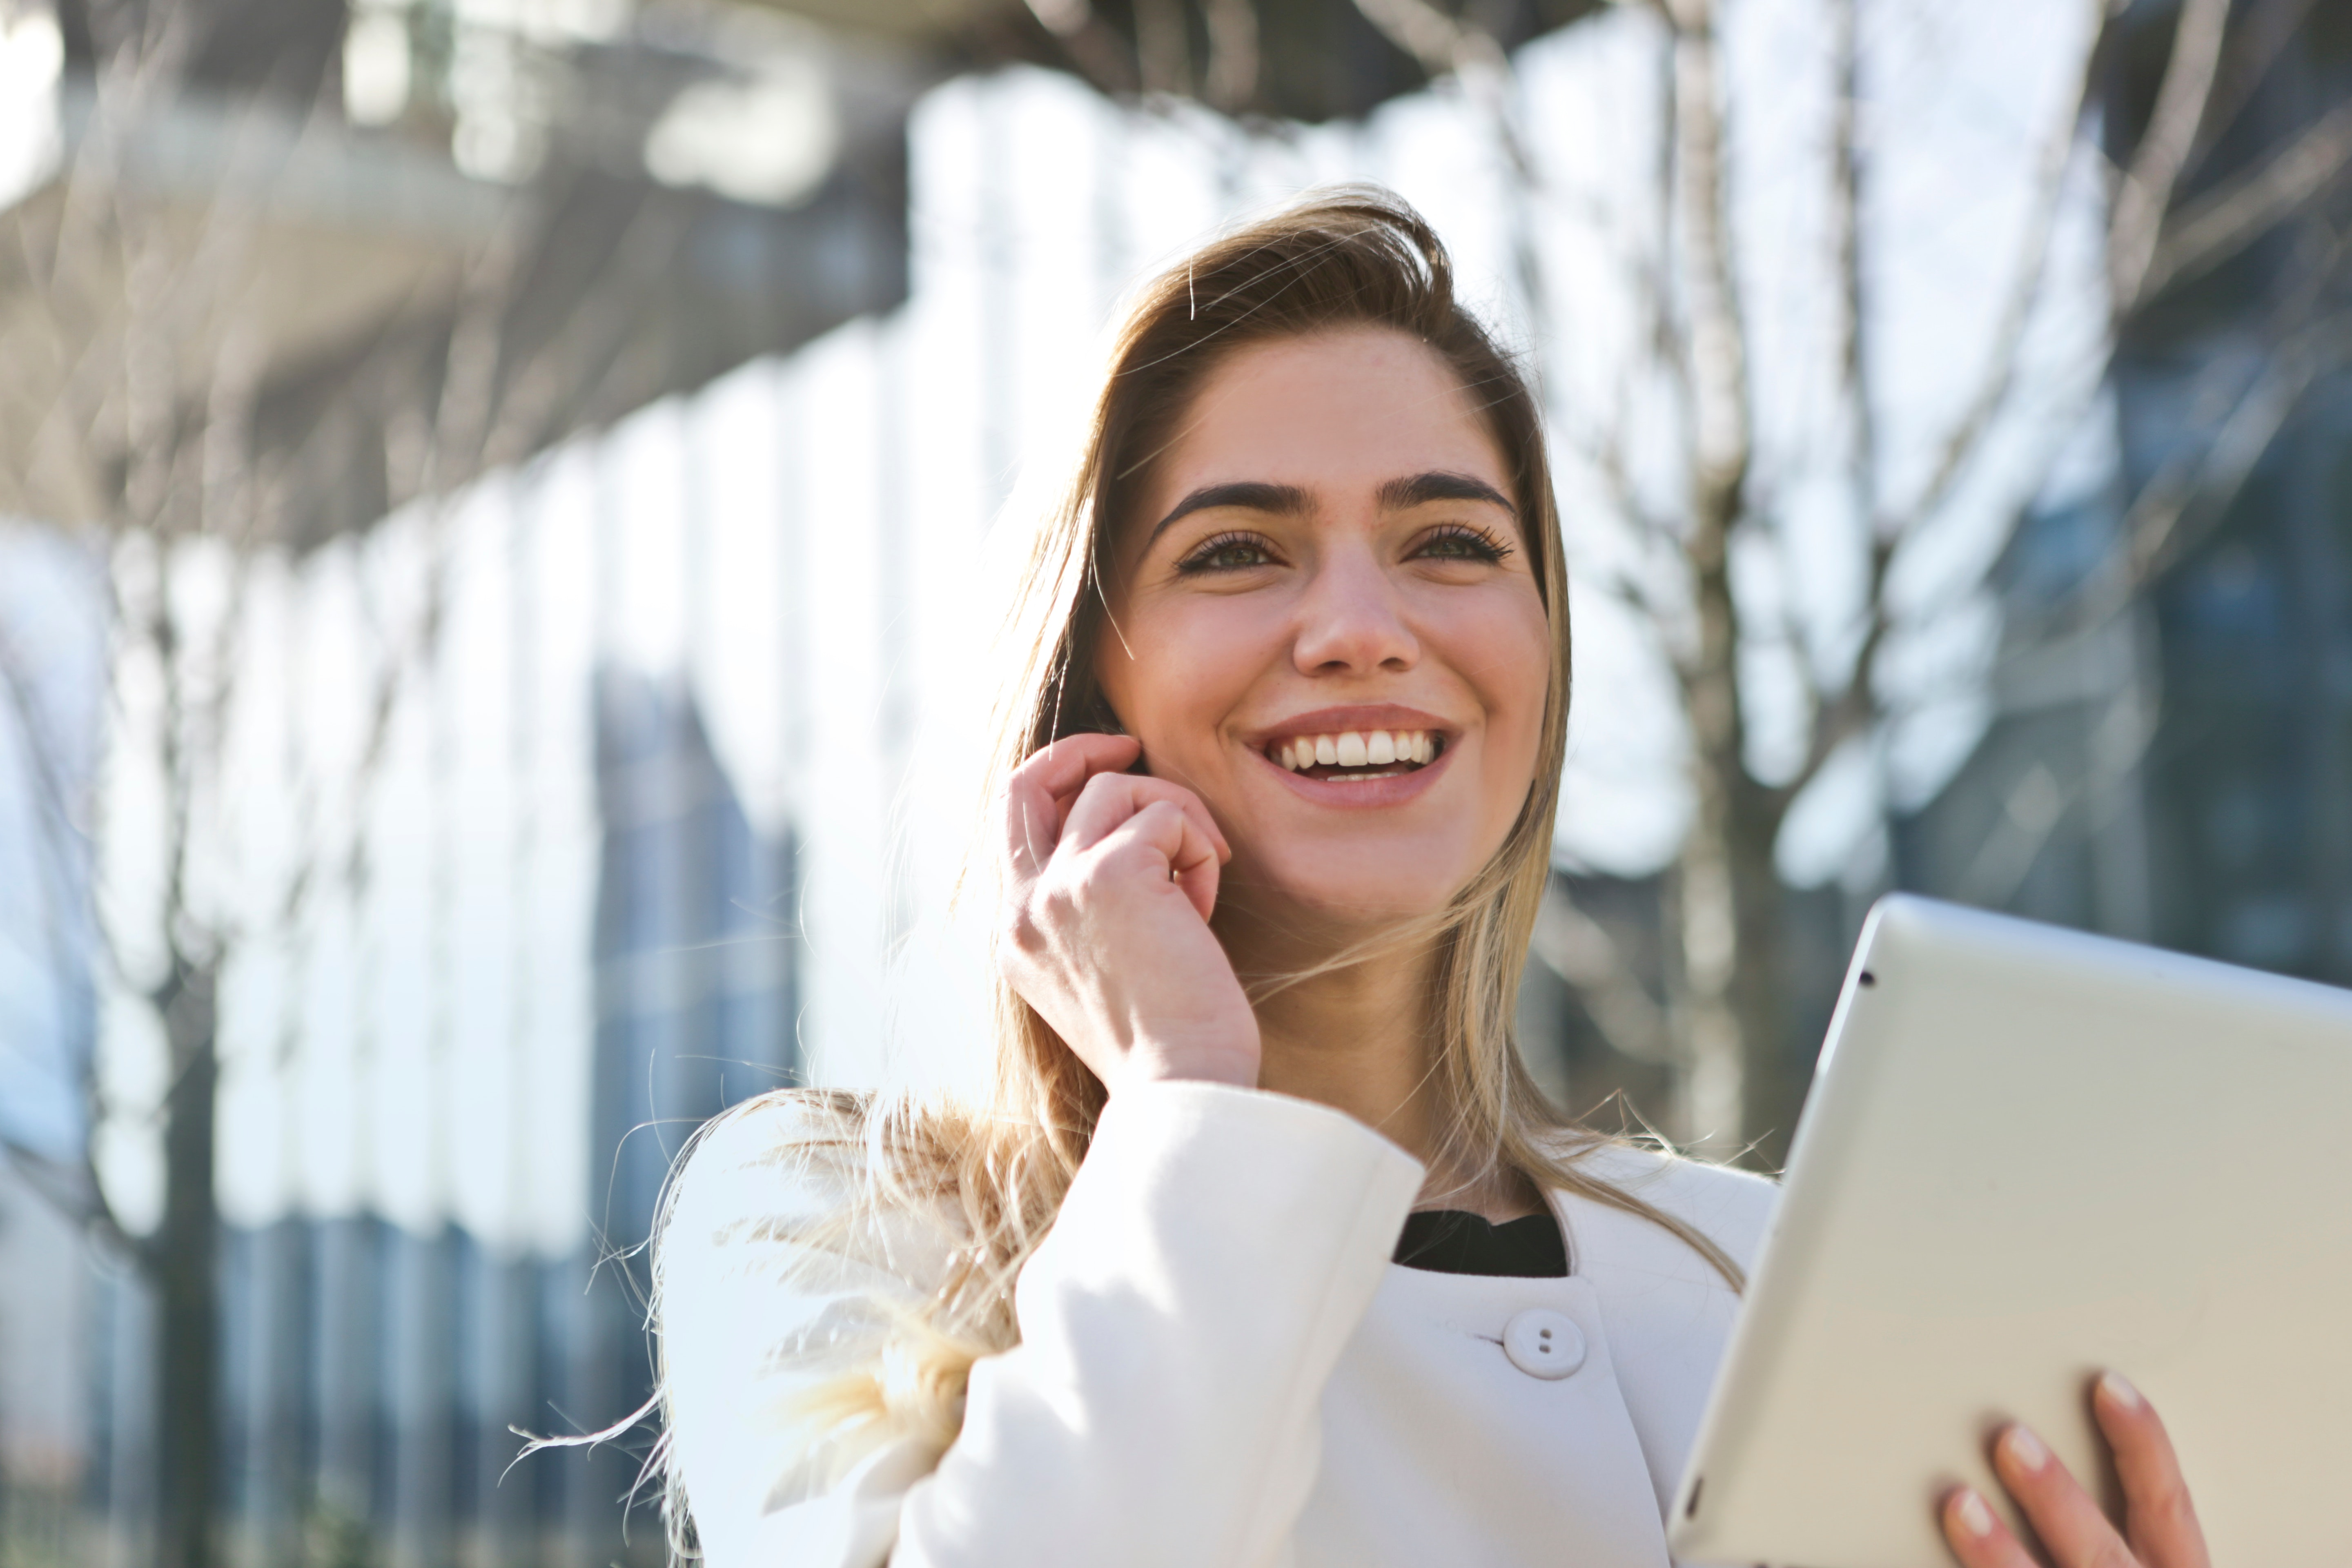 Blonde woman smiling on the phone